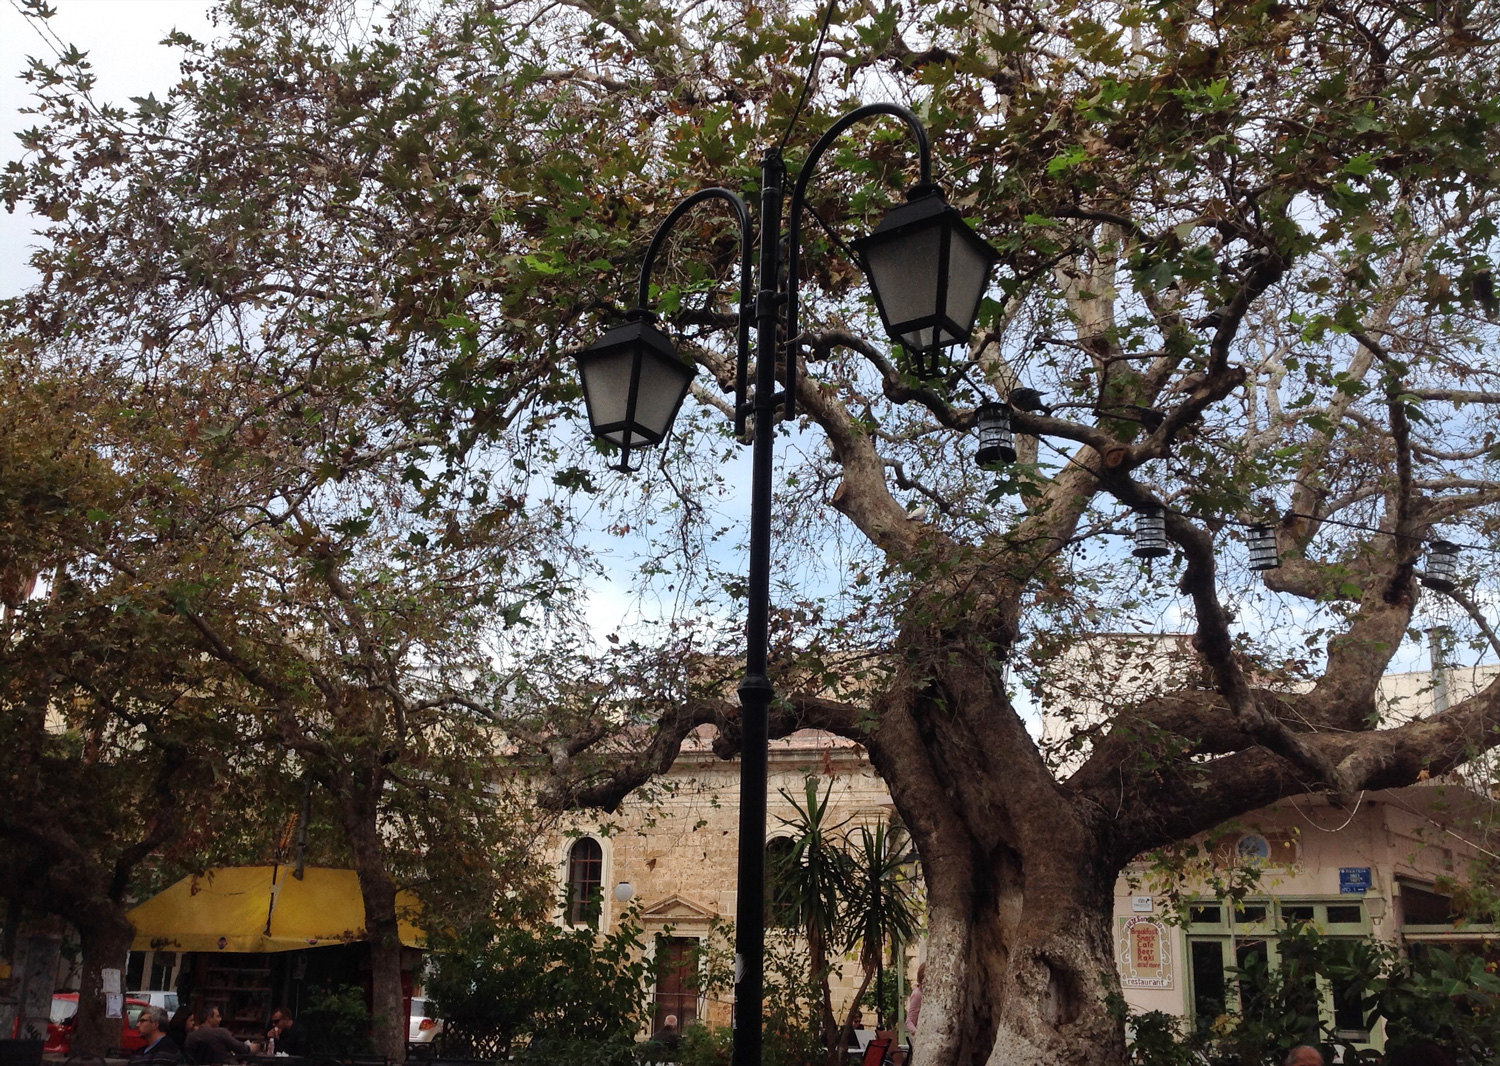 Old tree at splangia square